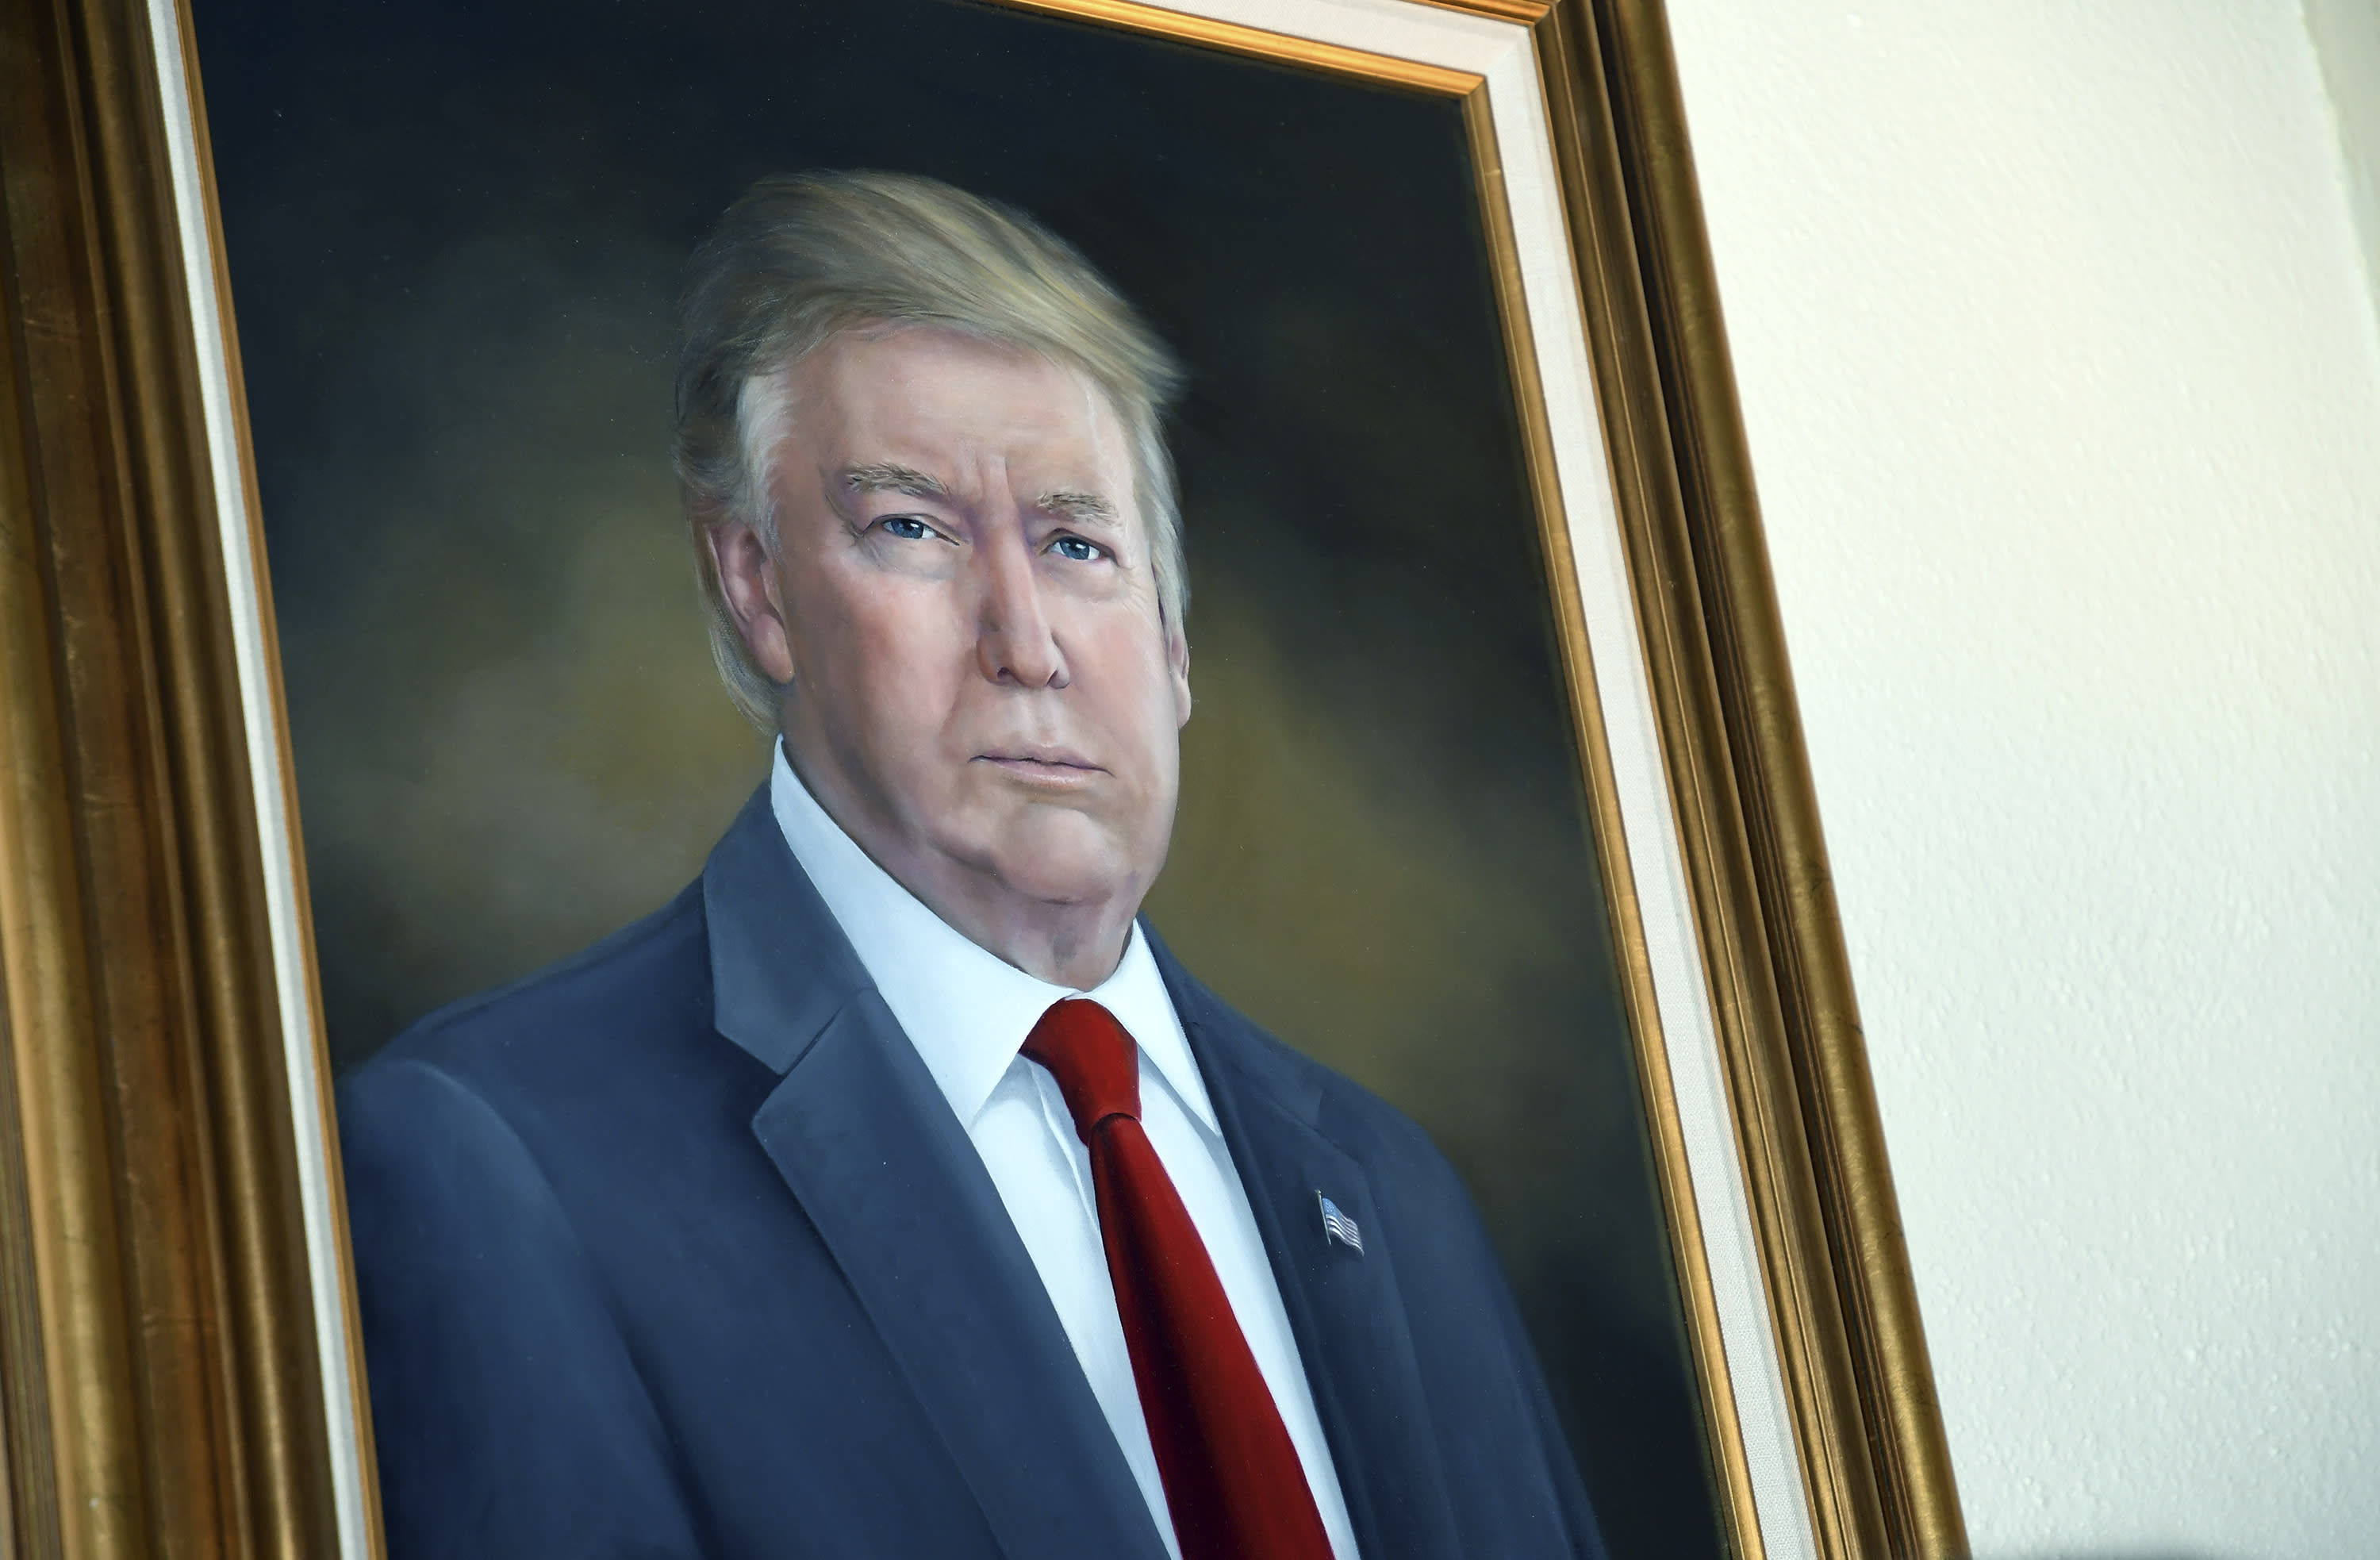 President Donald Trump's portrait hangs in the Colorado Capitol after an unveiling ceremony Thursday, Aug. 1, 2019, in Denver. Colorado Republicans raised more than $10,000 through a GoFundMe account to commission the portrait, which was painted by Sarah Boardman, an artist who also produced the Capitol's portrait of President Barack Obama. (AP Photo/Thomas Peipert)